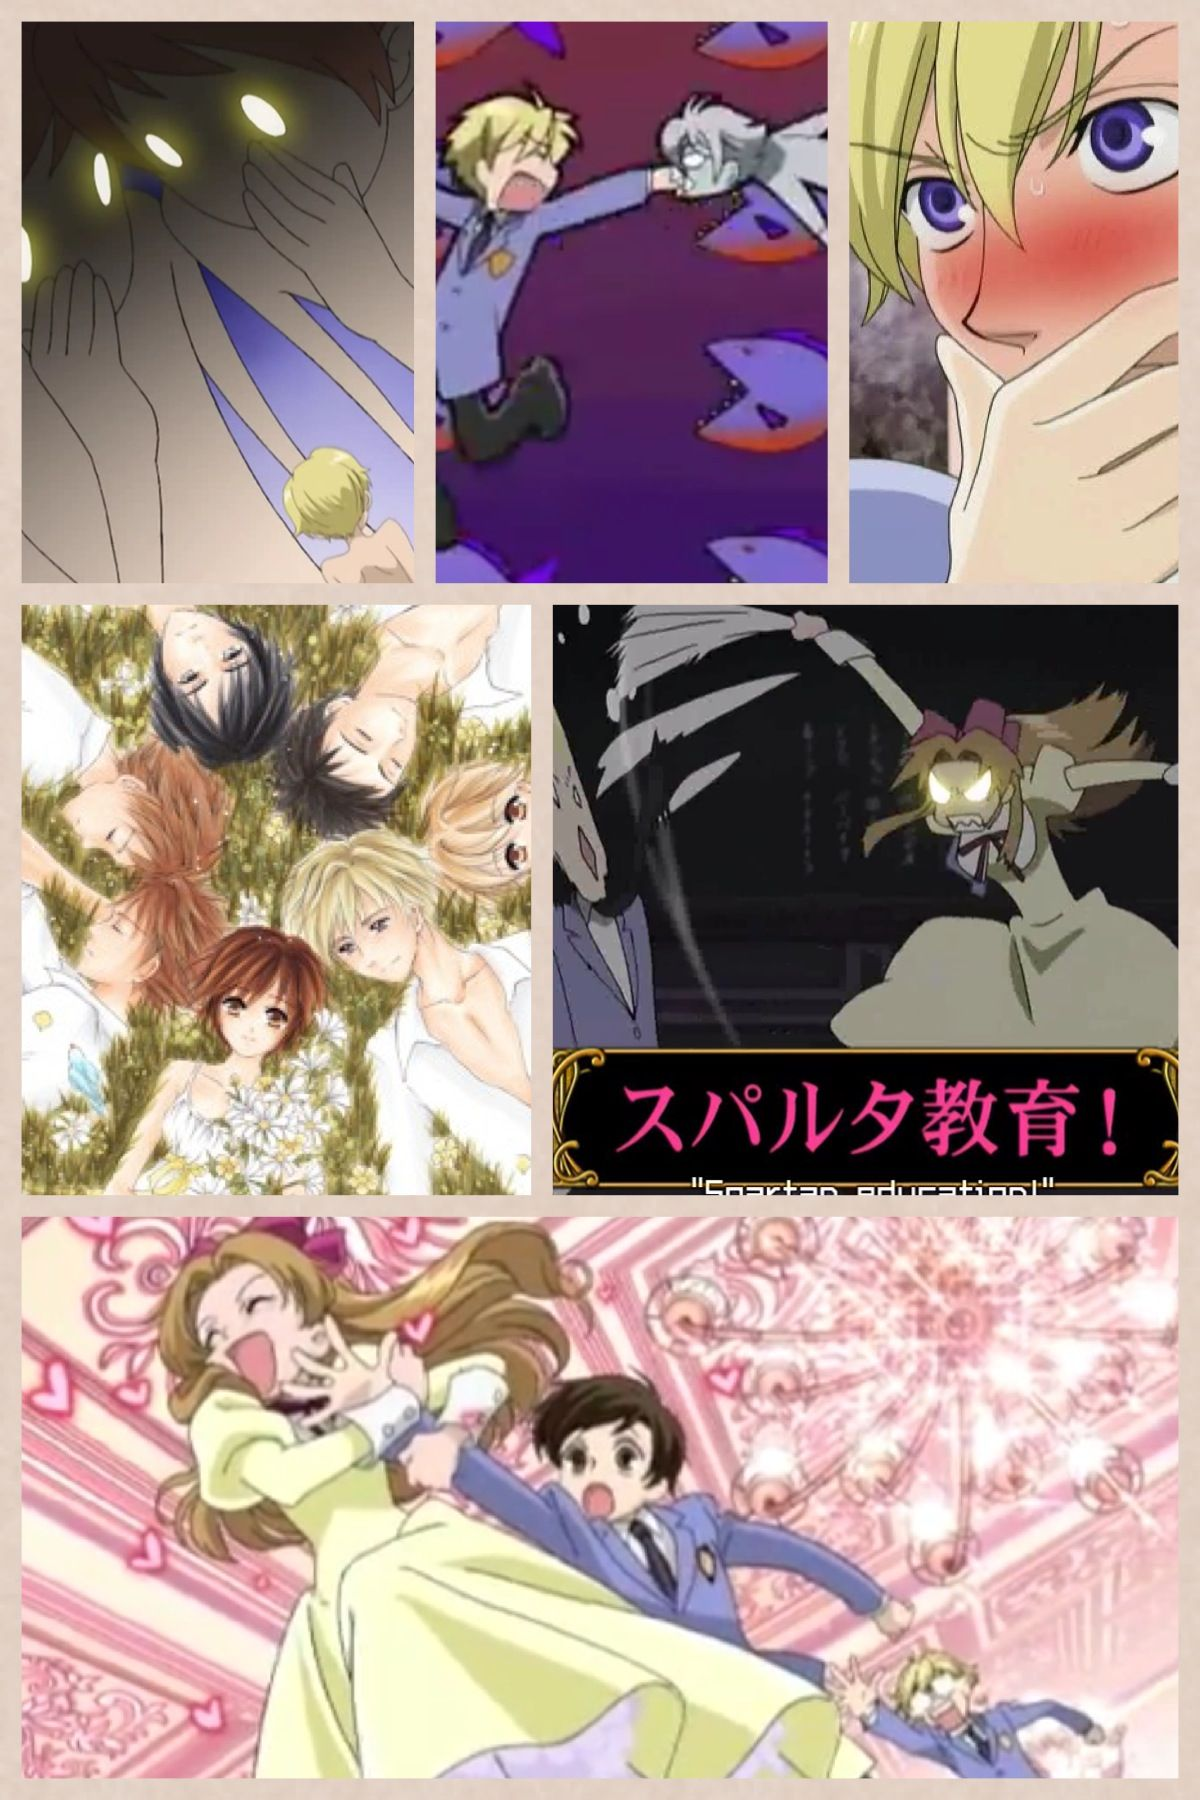 Ouran high school host club soo funny watch it if you have not!